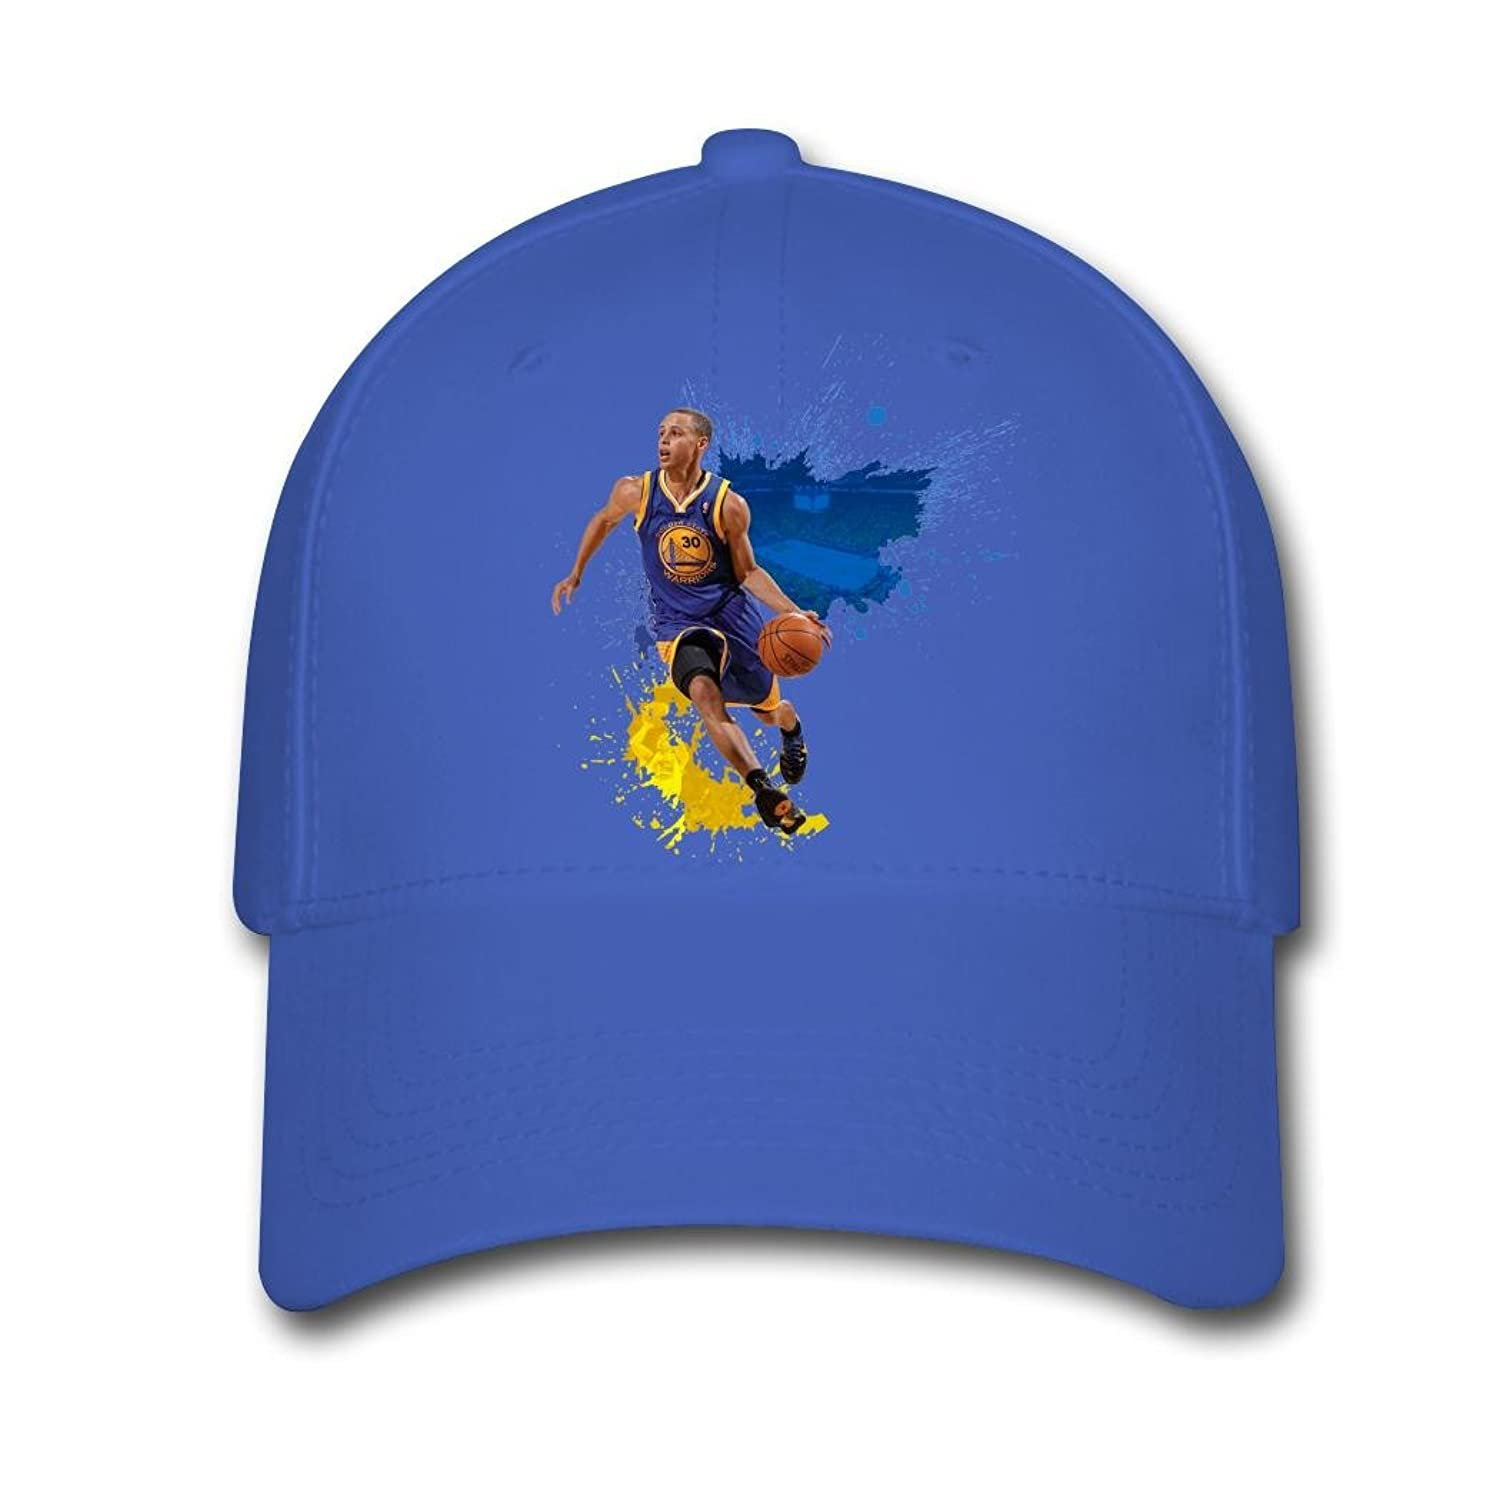 Woman Men Cotton Stephen Curry Play Basketball Adjustable hats Baseball caps